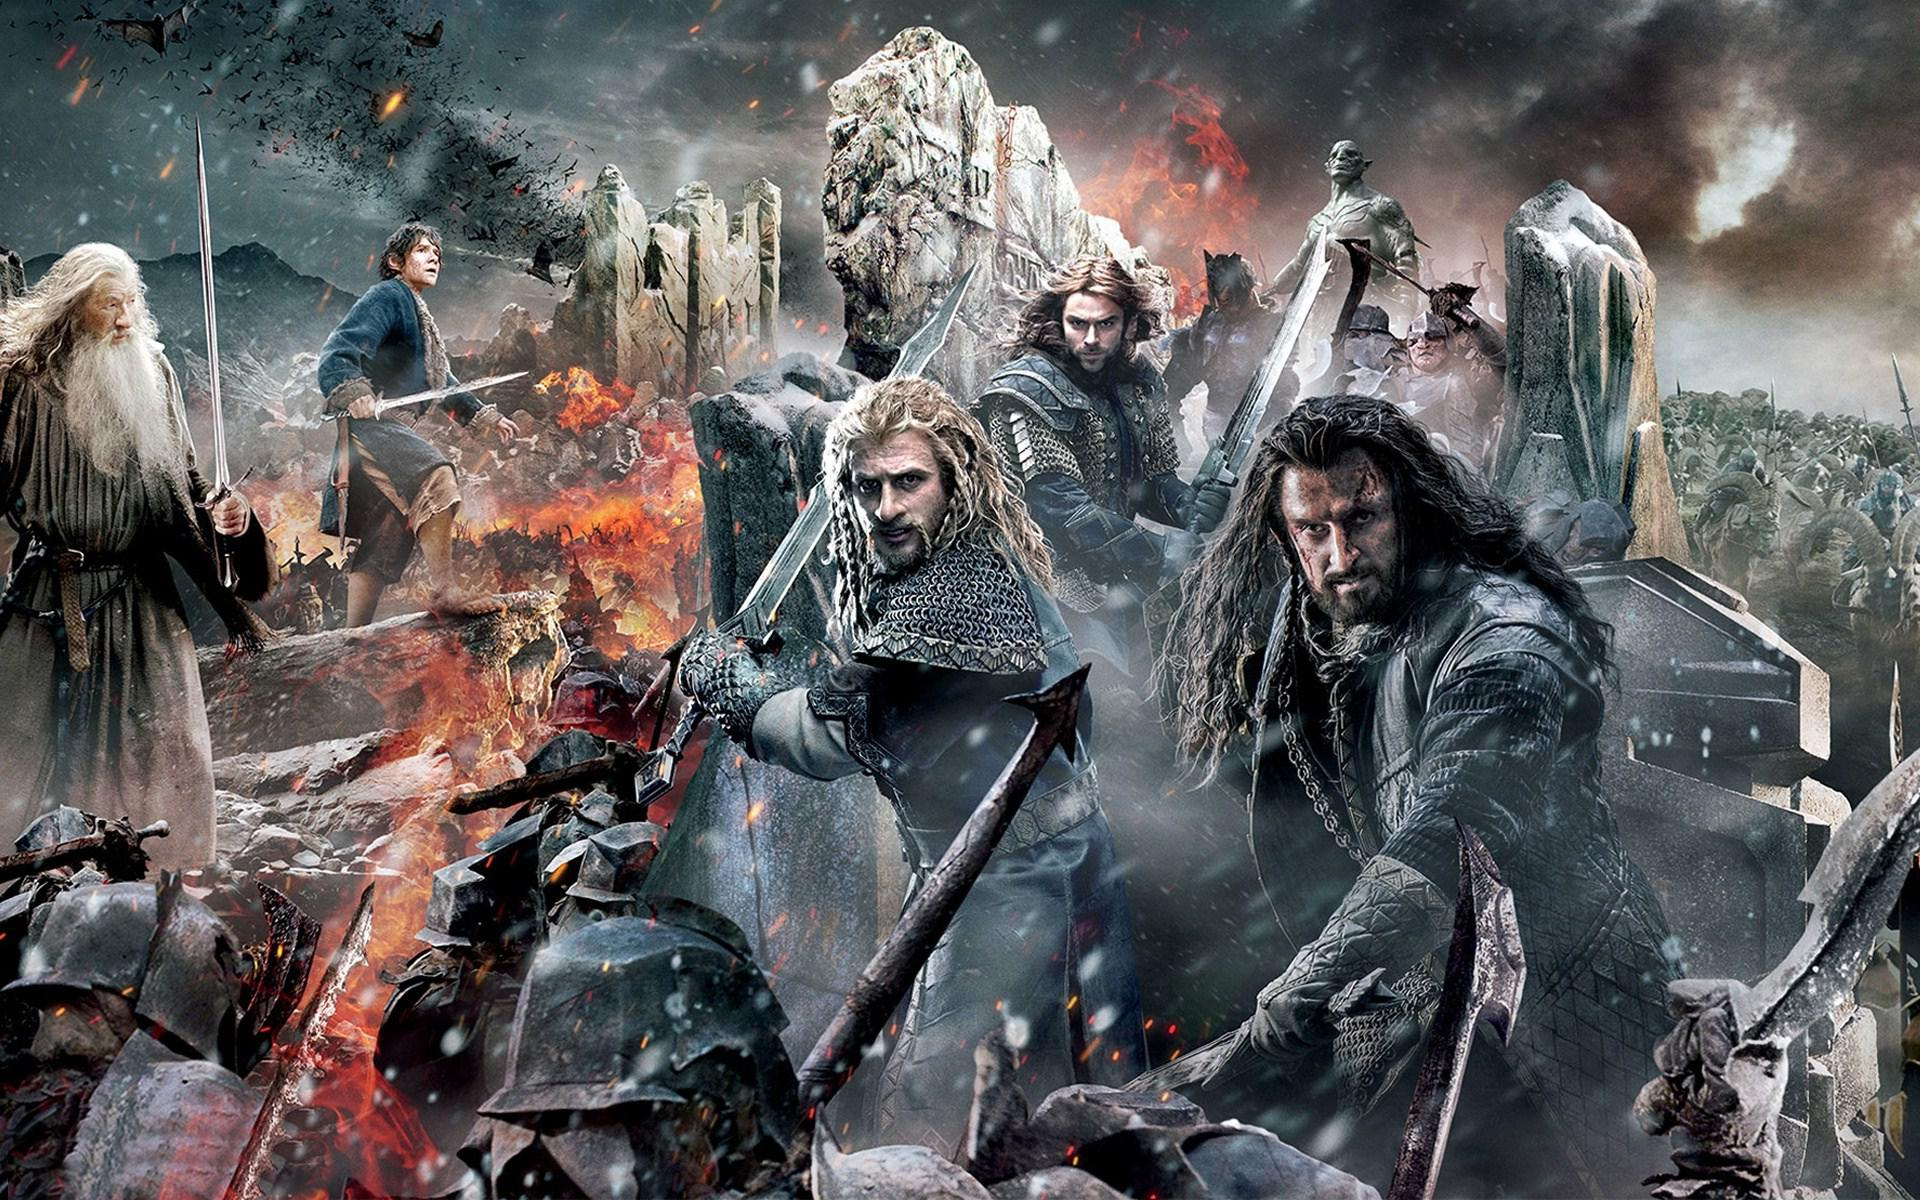 A Battling We Will Go The Hobbit The Battle Of The Five Armies 2014 Tripping Through Gateways